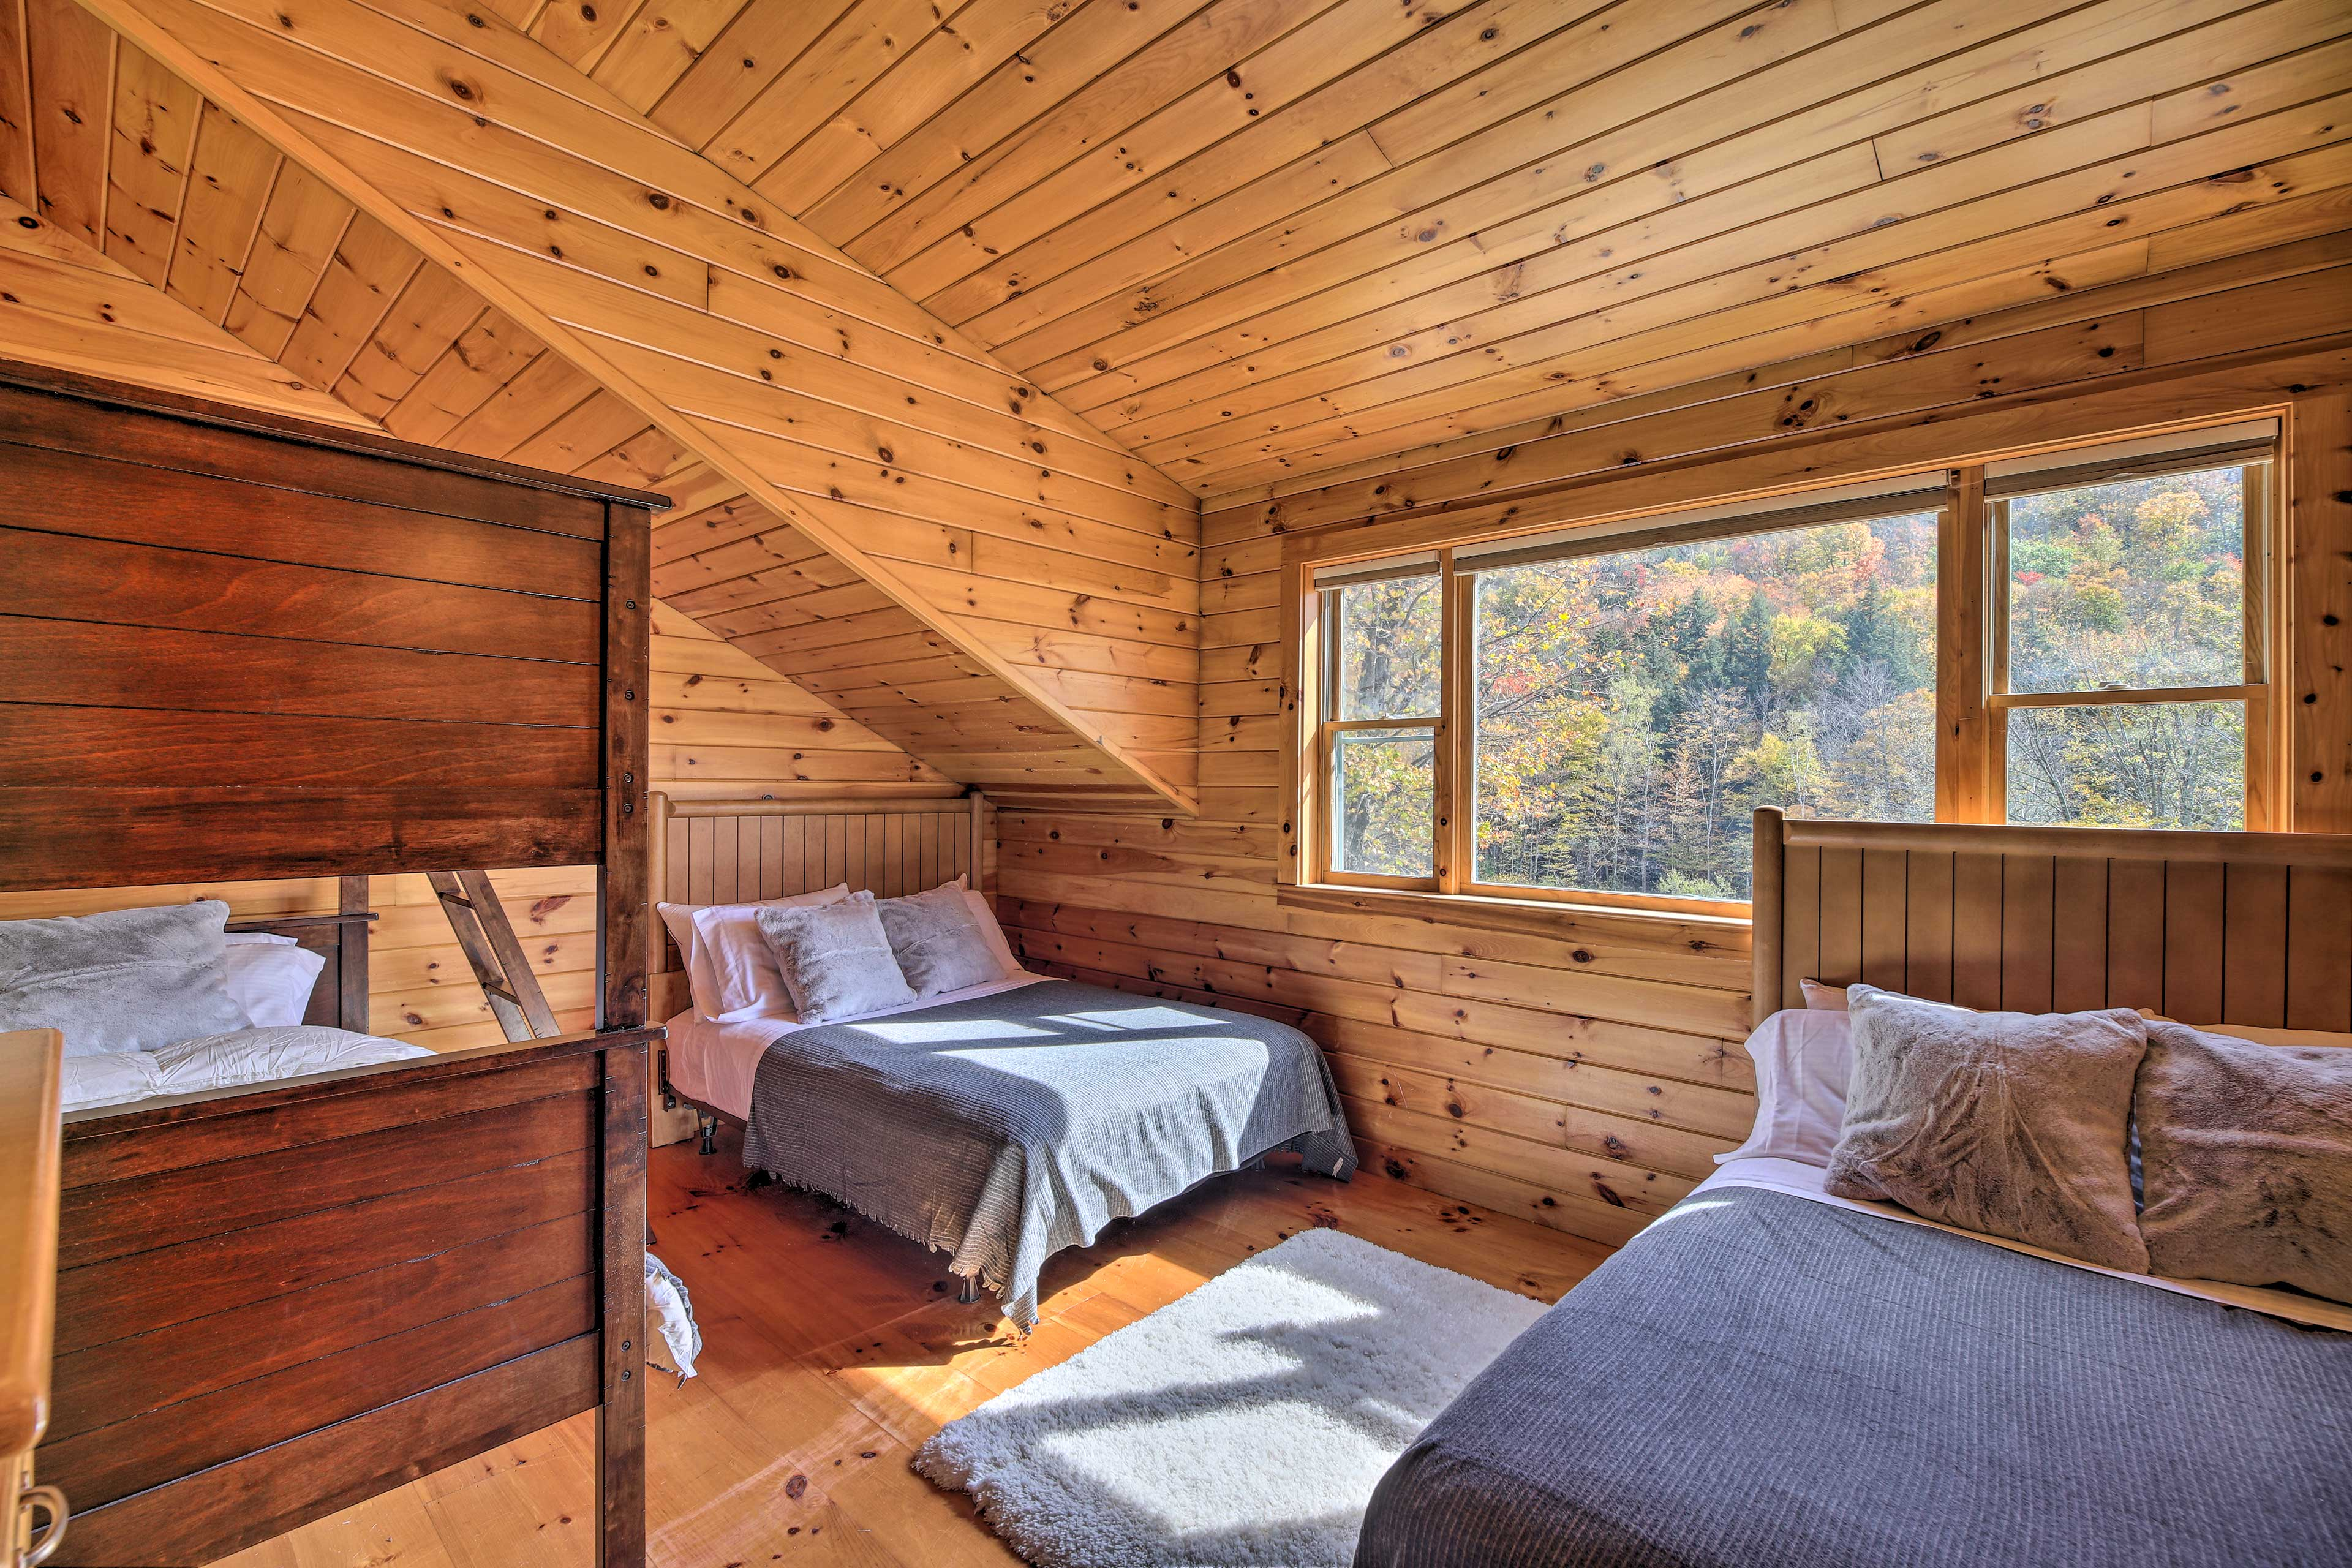 This room is accessible through the bedroom with 2 twin beds.